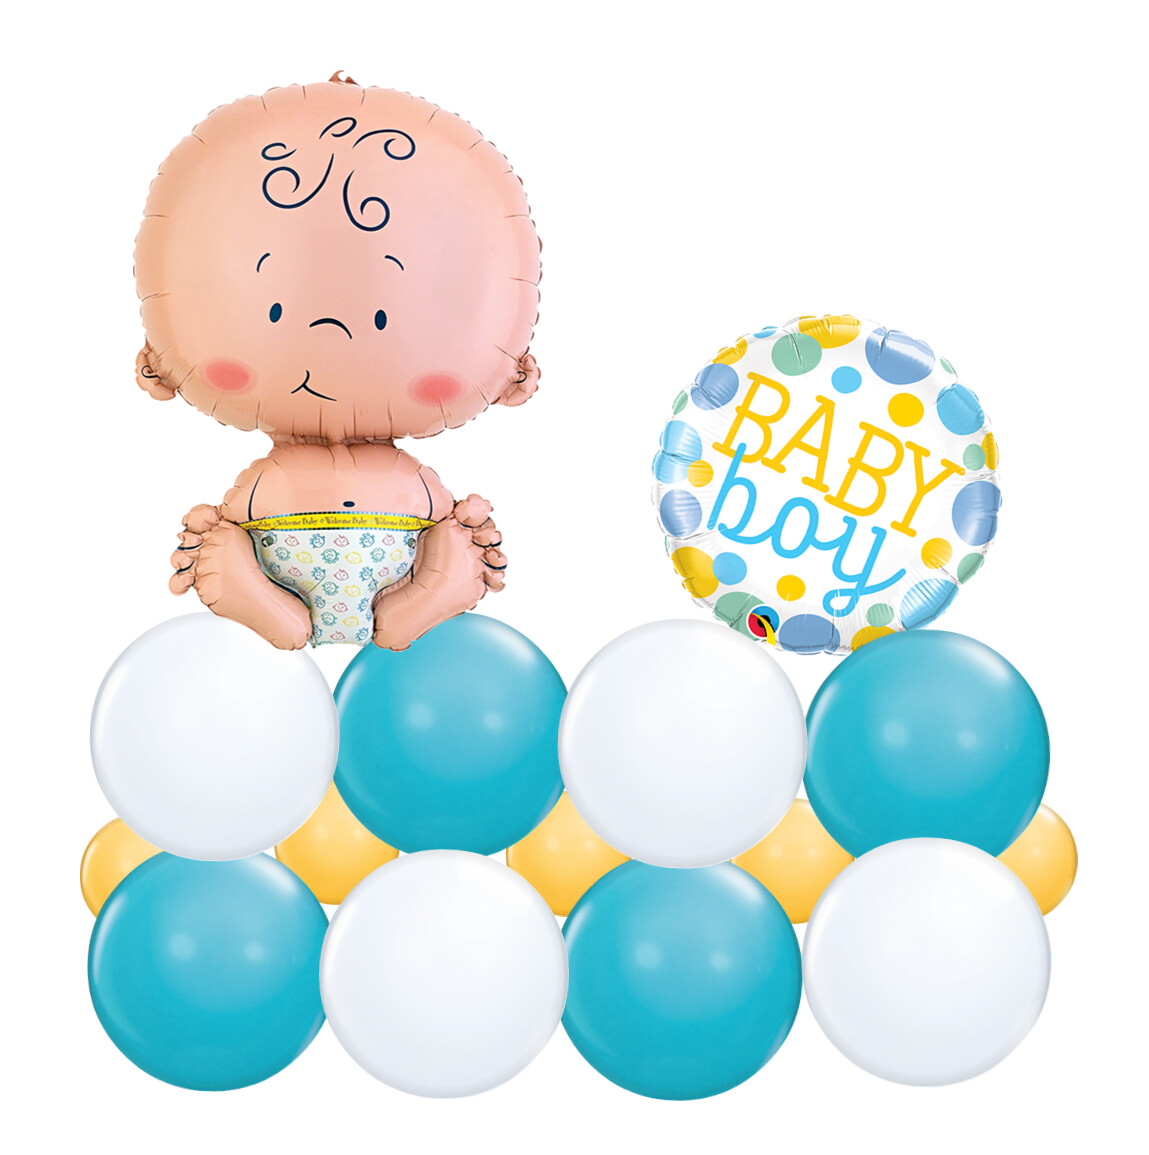 Baby Boy Balloon Marquee for Baby Shower, air filled long lasting